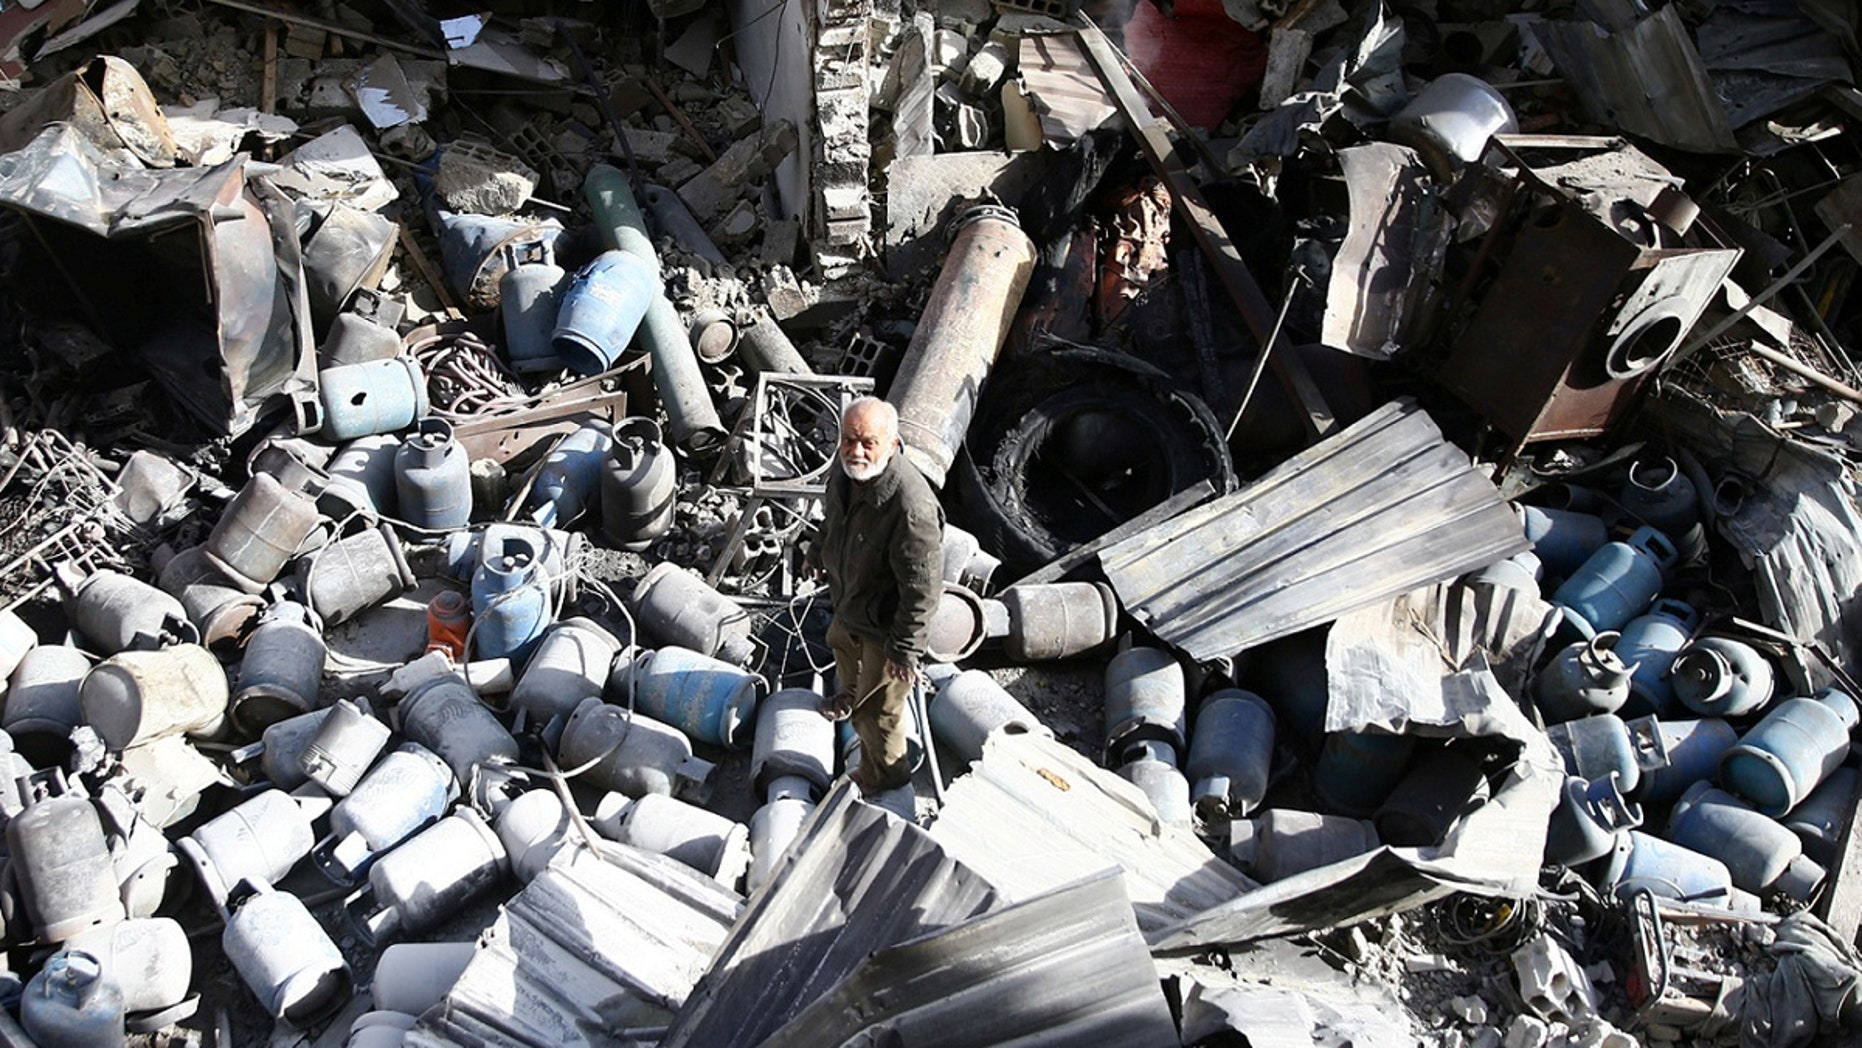 A man stands on the rubble of damaged buildings after an airstrike on the rebel-held town of Mesraba in the eastern Damascus suburb of Ghouta, Syria, November 26, 2017.